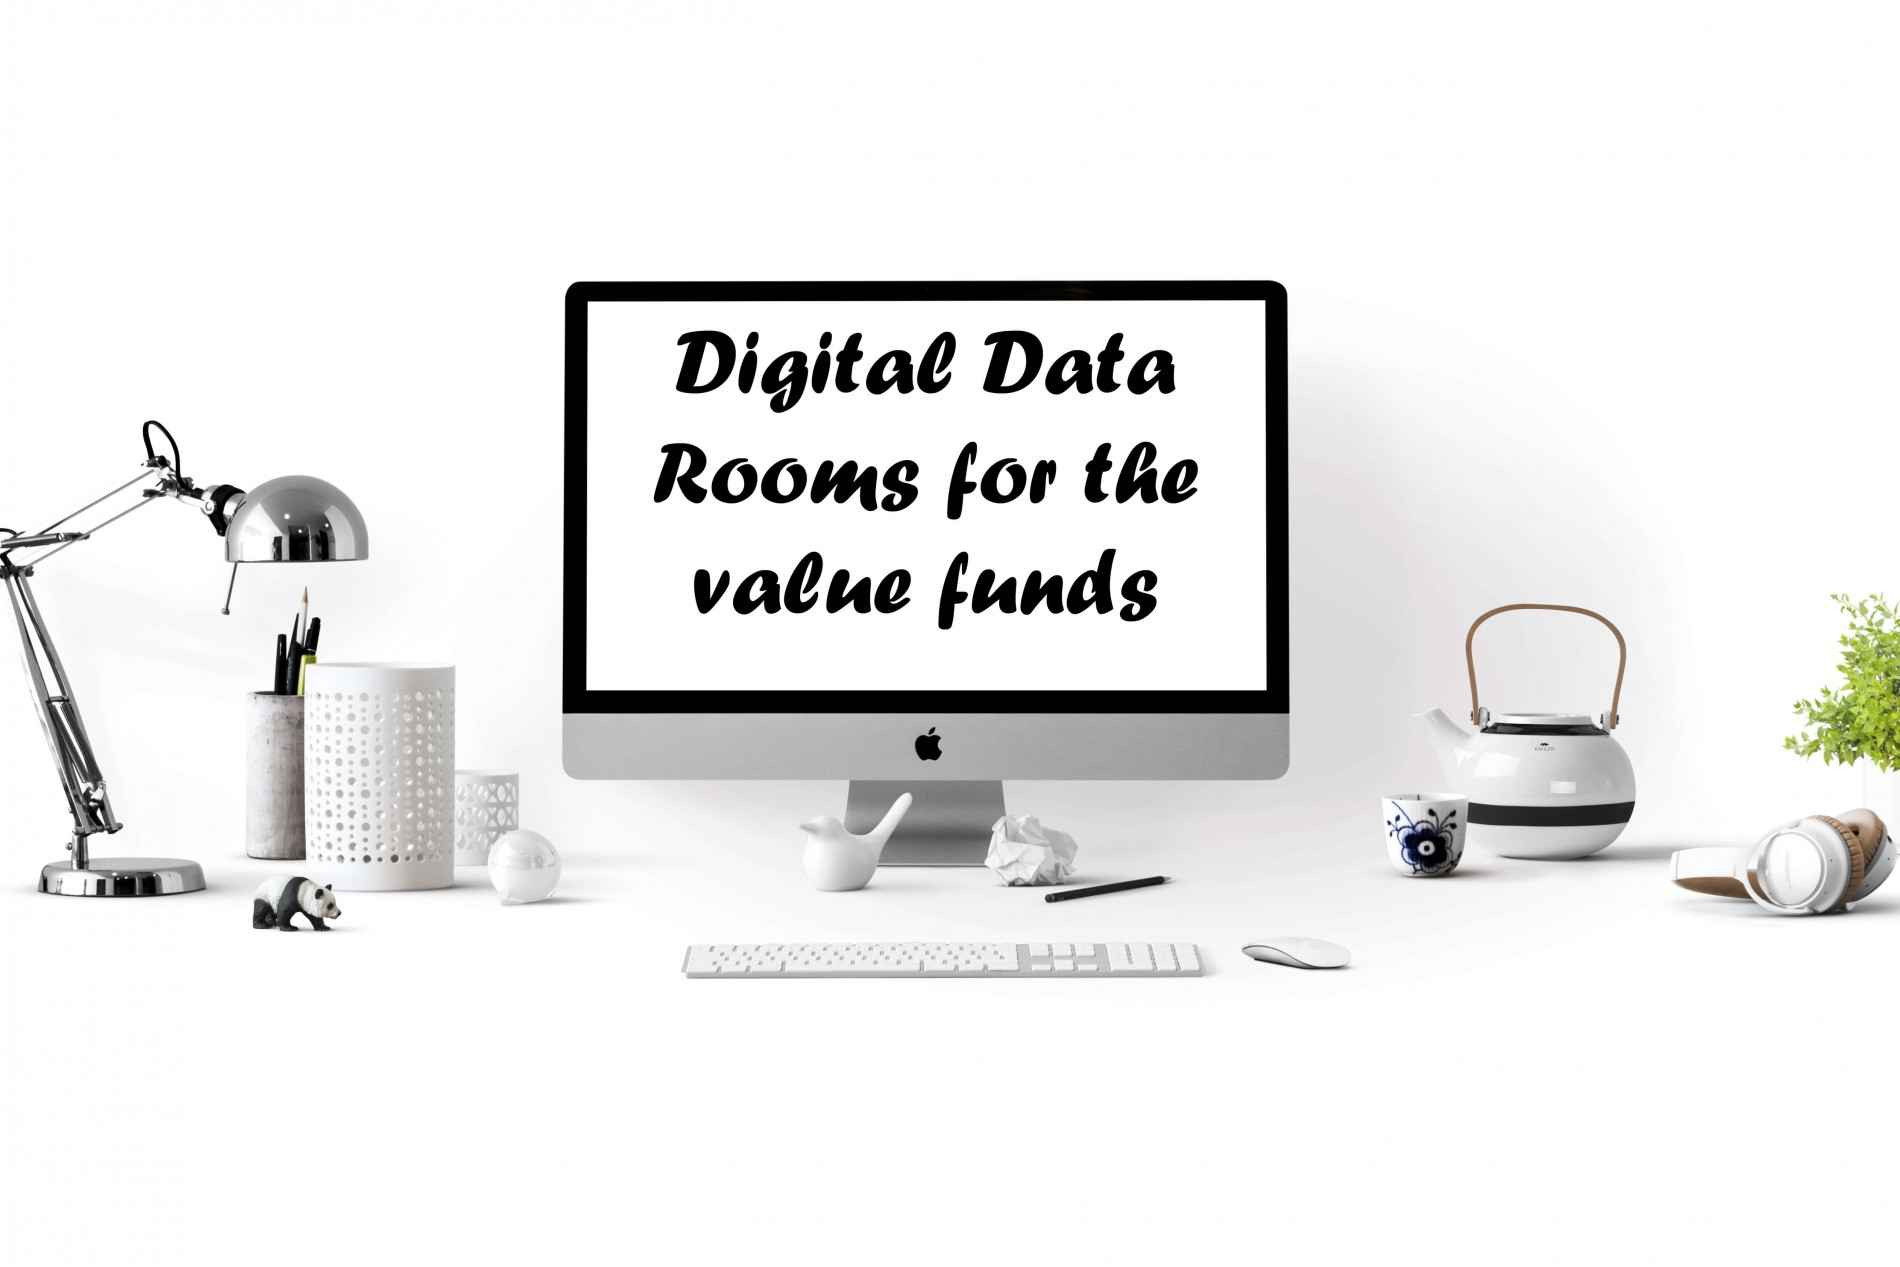 Digital Data Rooms for fundraising